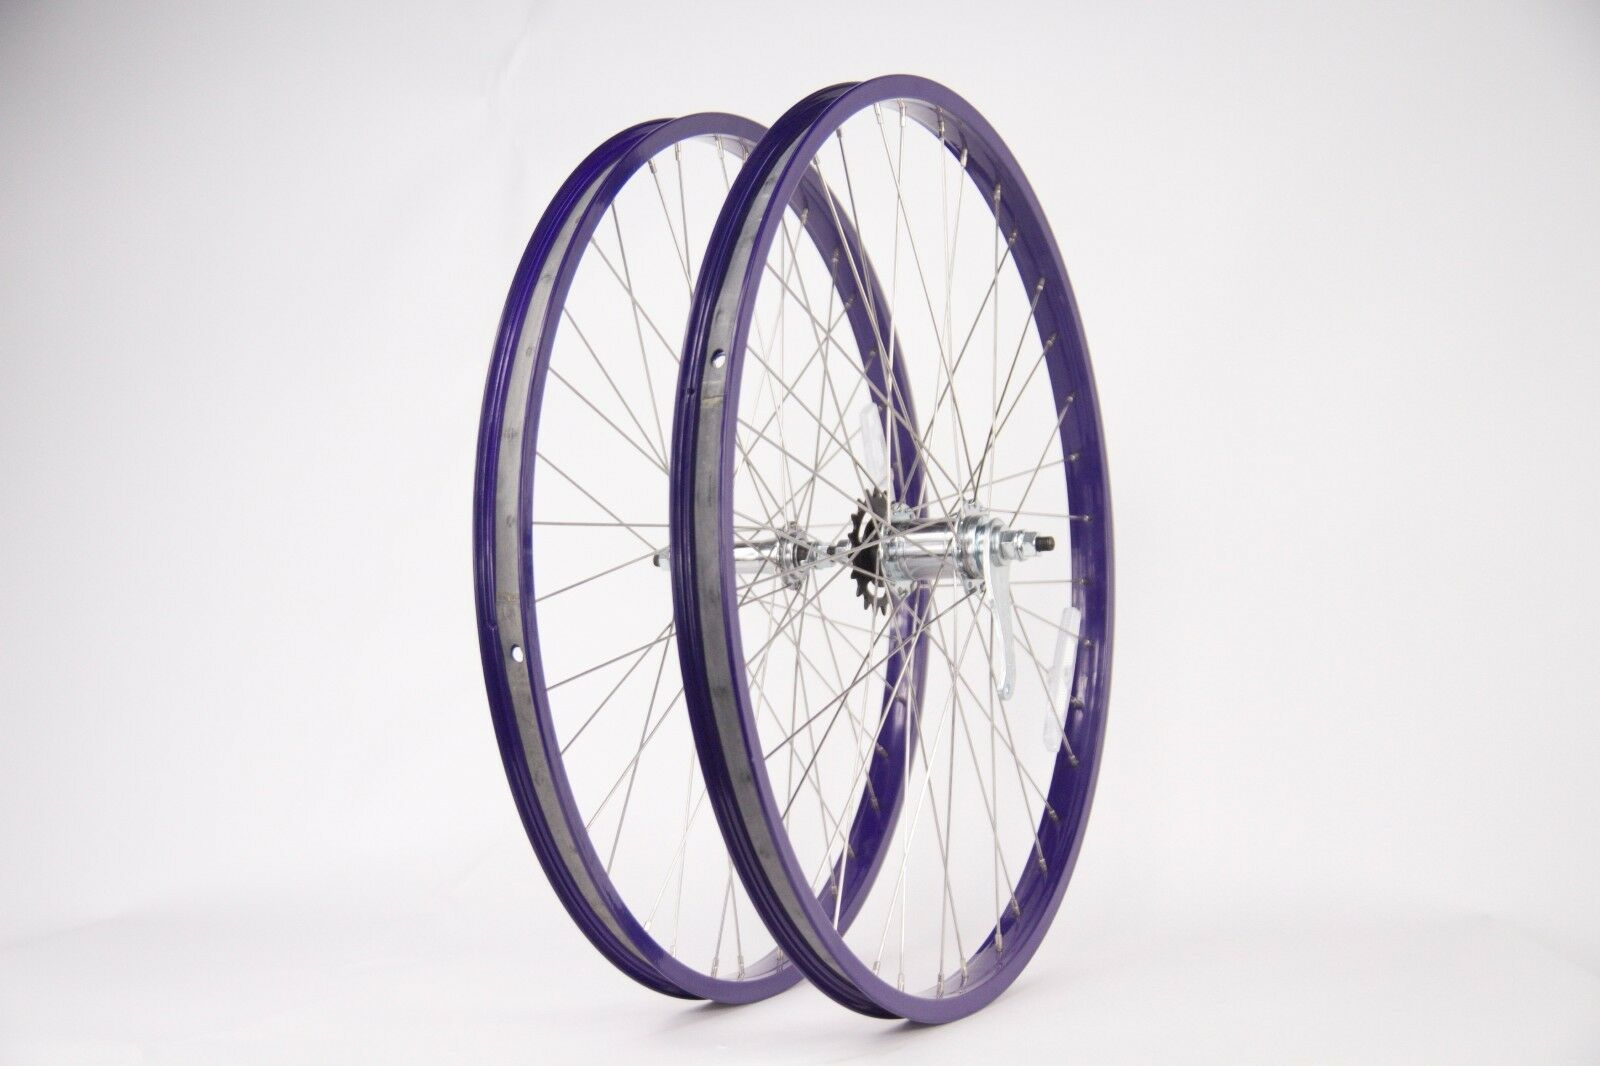 Purple Beach Cruiser  26  Rims W Coaster Brake Front & Rear Wheels  no.1 online